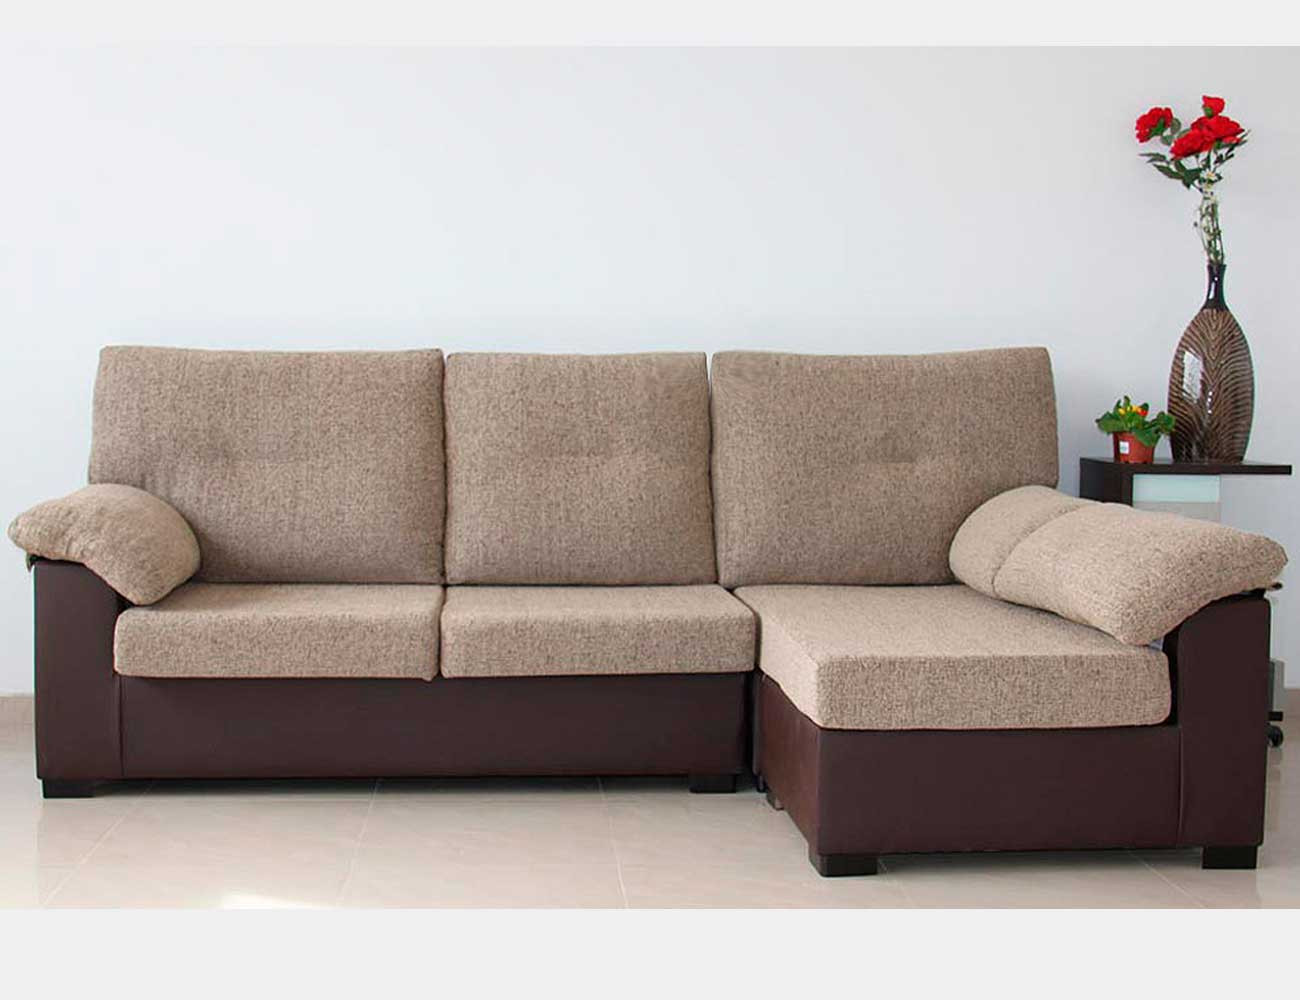 Sofa Chaise Longue Barato Adorable sofá Chaise Longue Reversible Barato 6596 Of 49  Mejor sofa Chaise Longue Barato